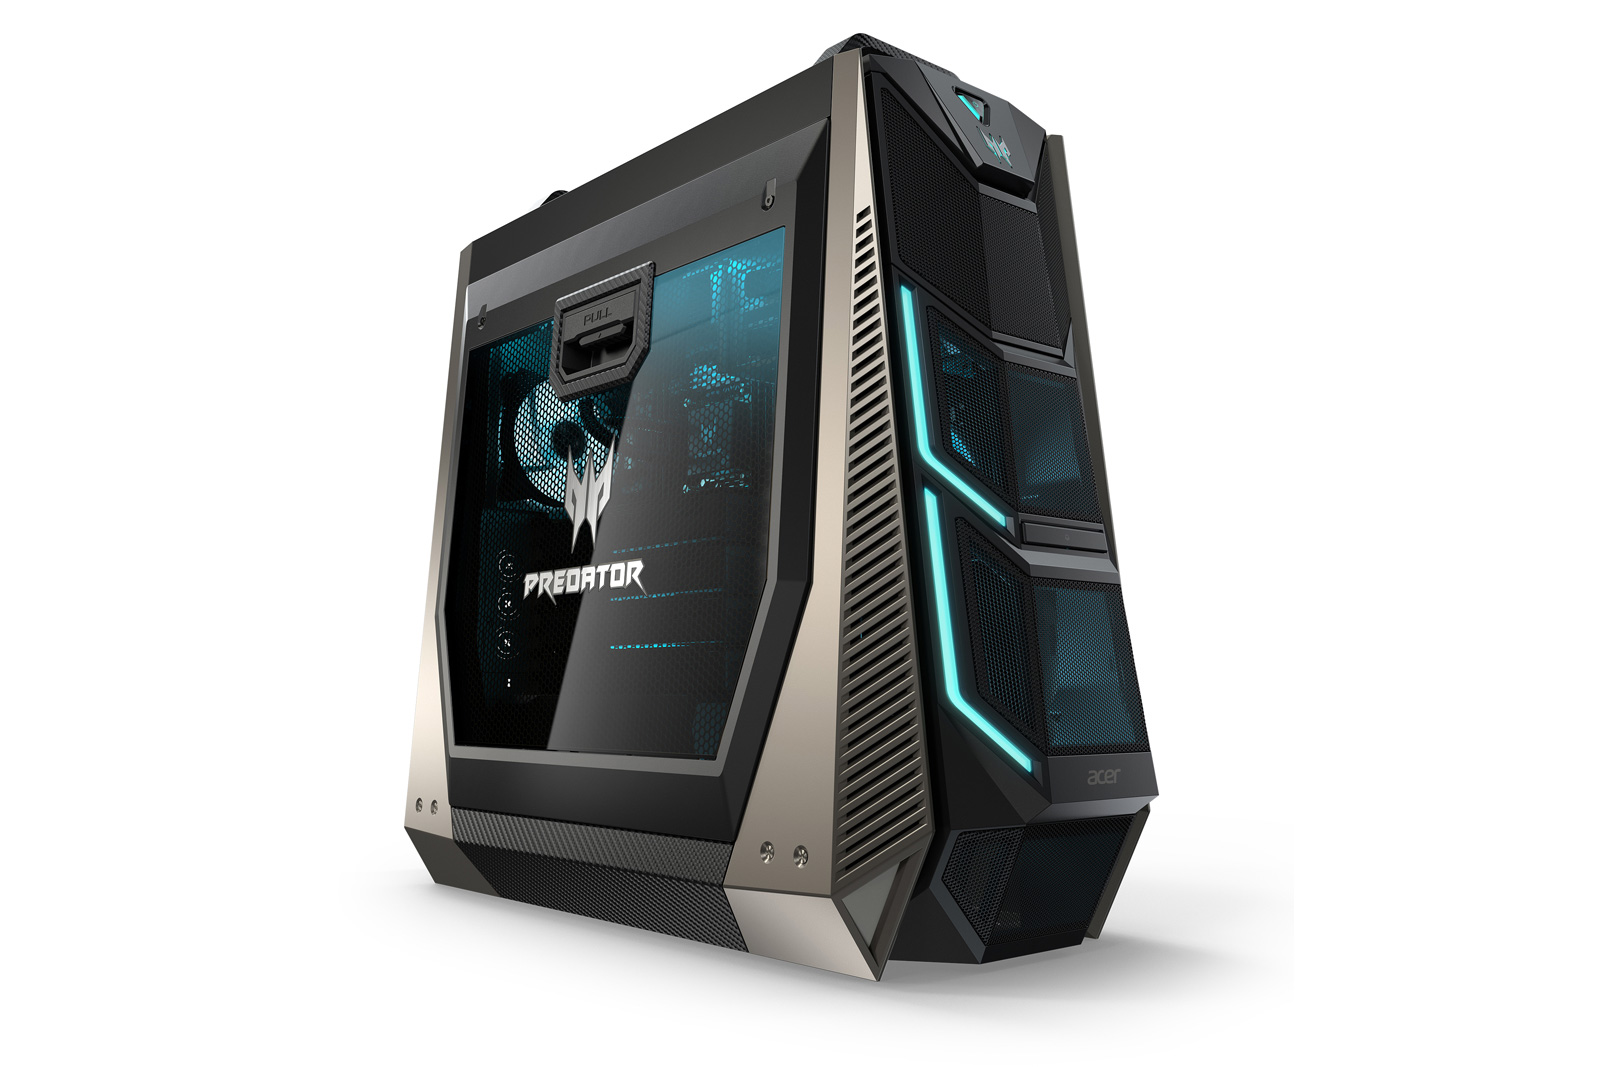 Acer's new gaming PCs include an 18-core liquid-cooled desktop